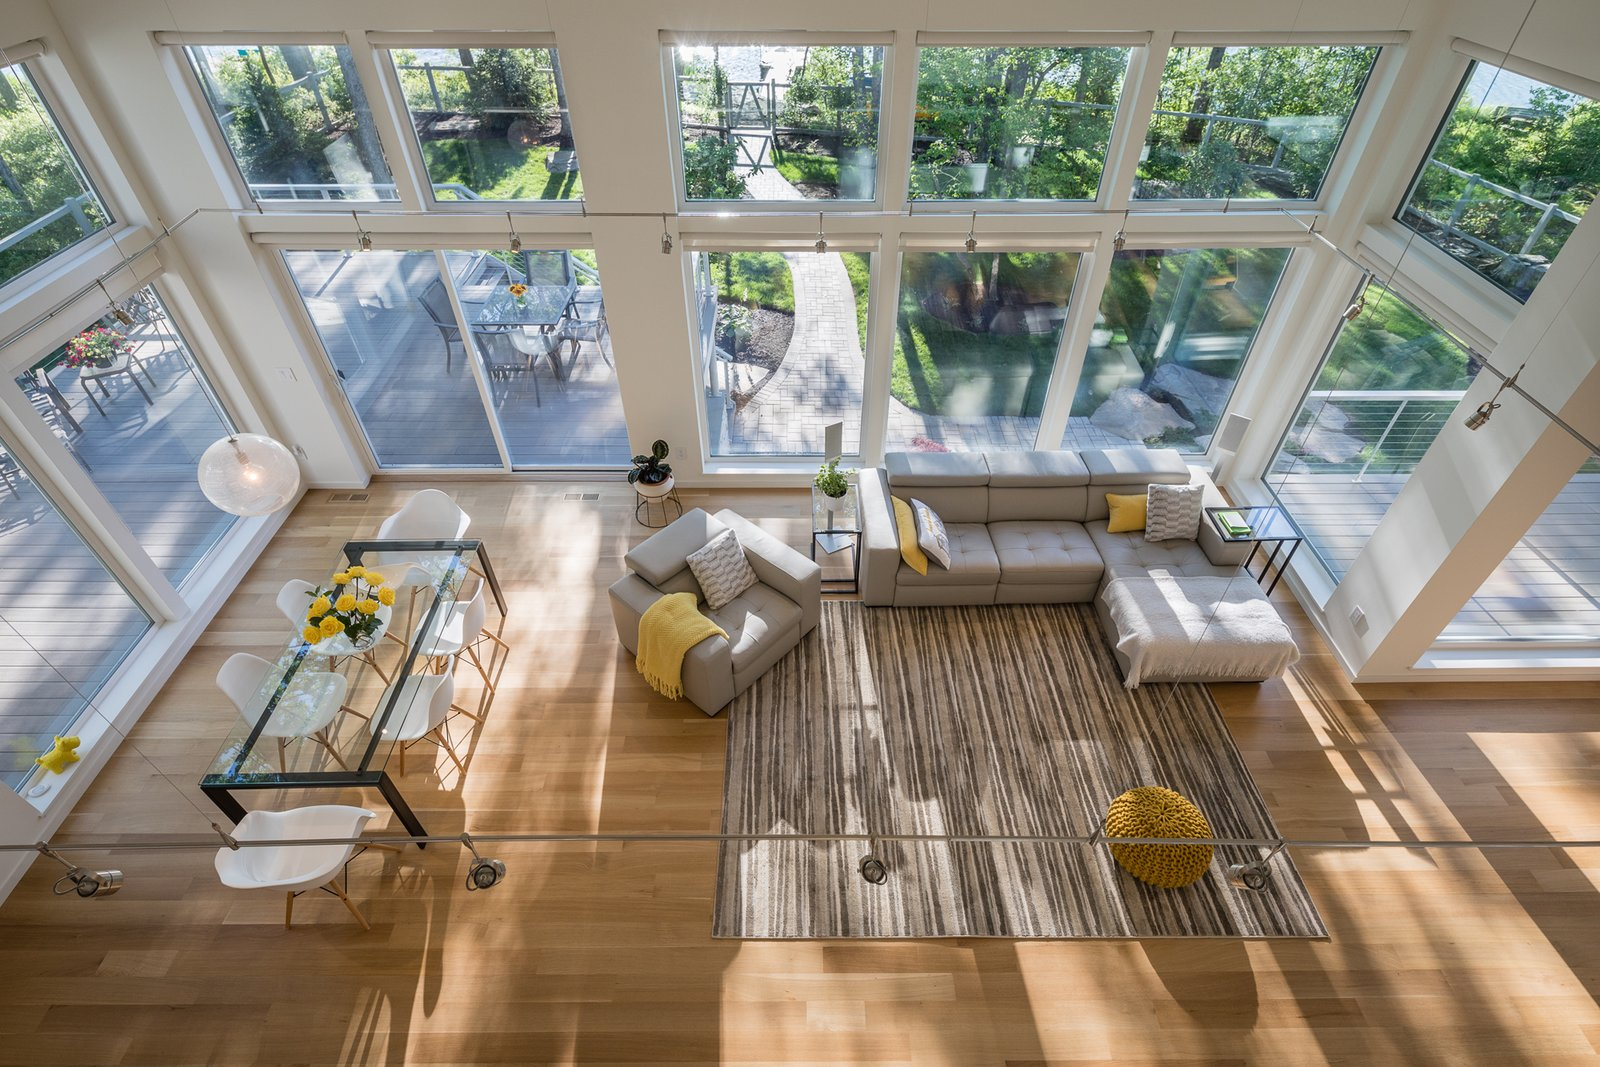 View of dining room and living room from second floor  Khabensky Residence by Richard Pedranti Architect